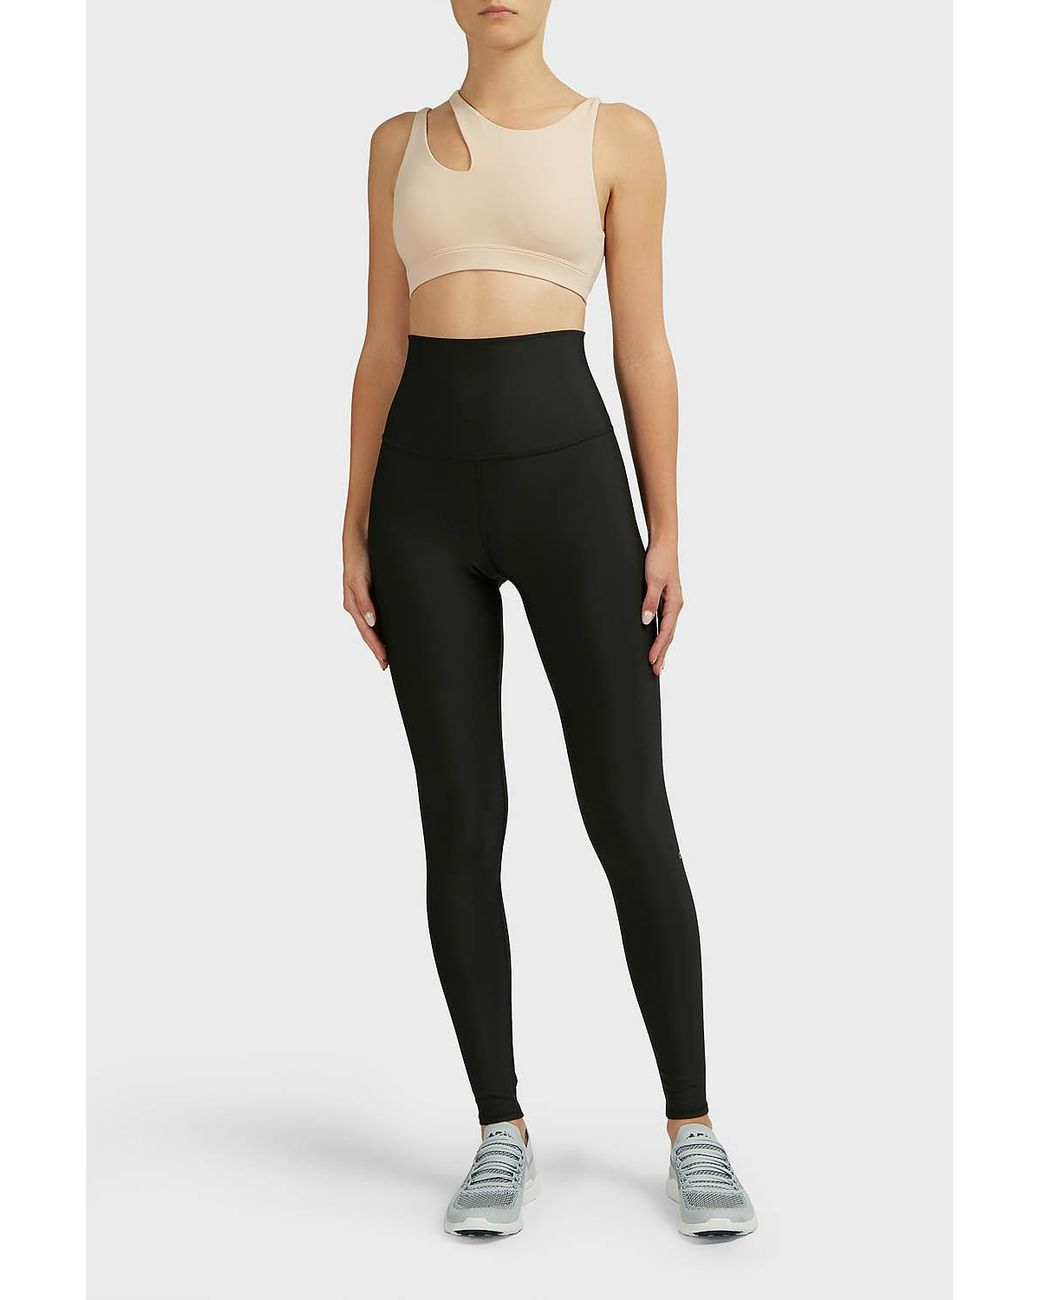 7a1ebe4fbf1297 Alo Yoga Extreme High-waist Airlift Leggings in Black - Lyst